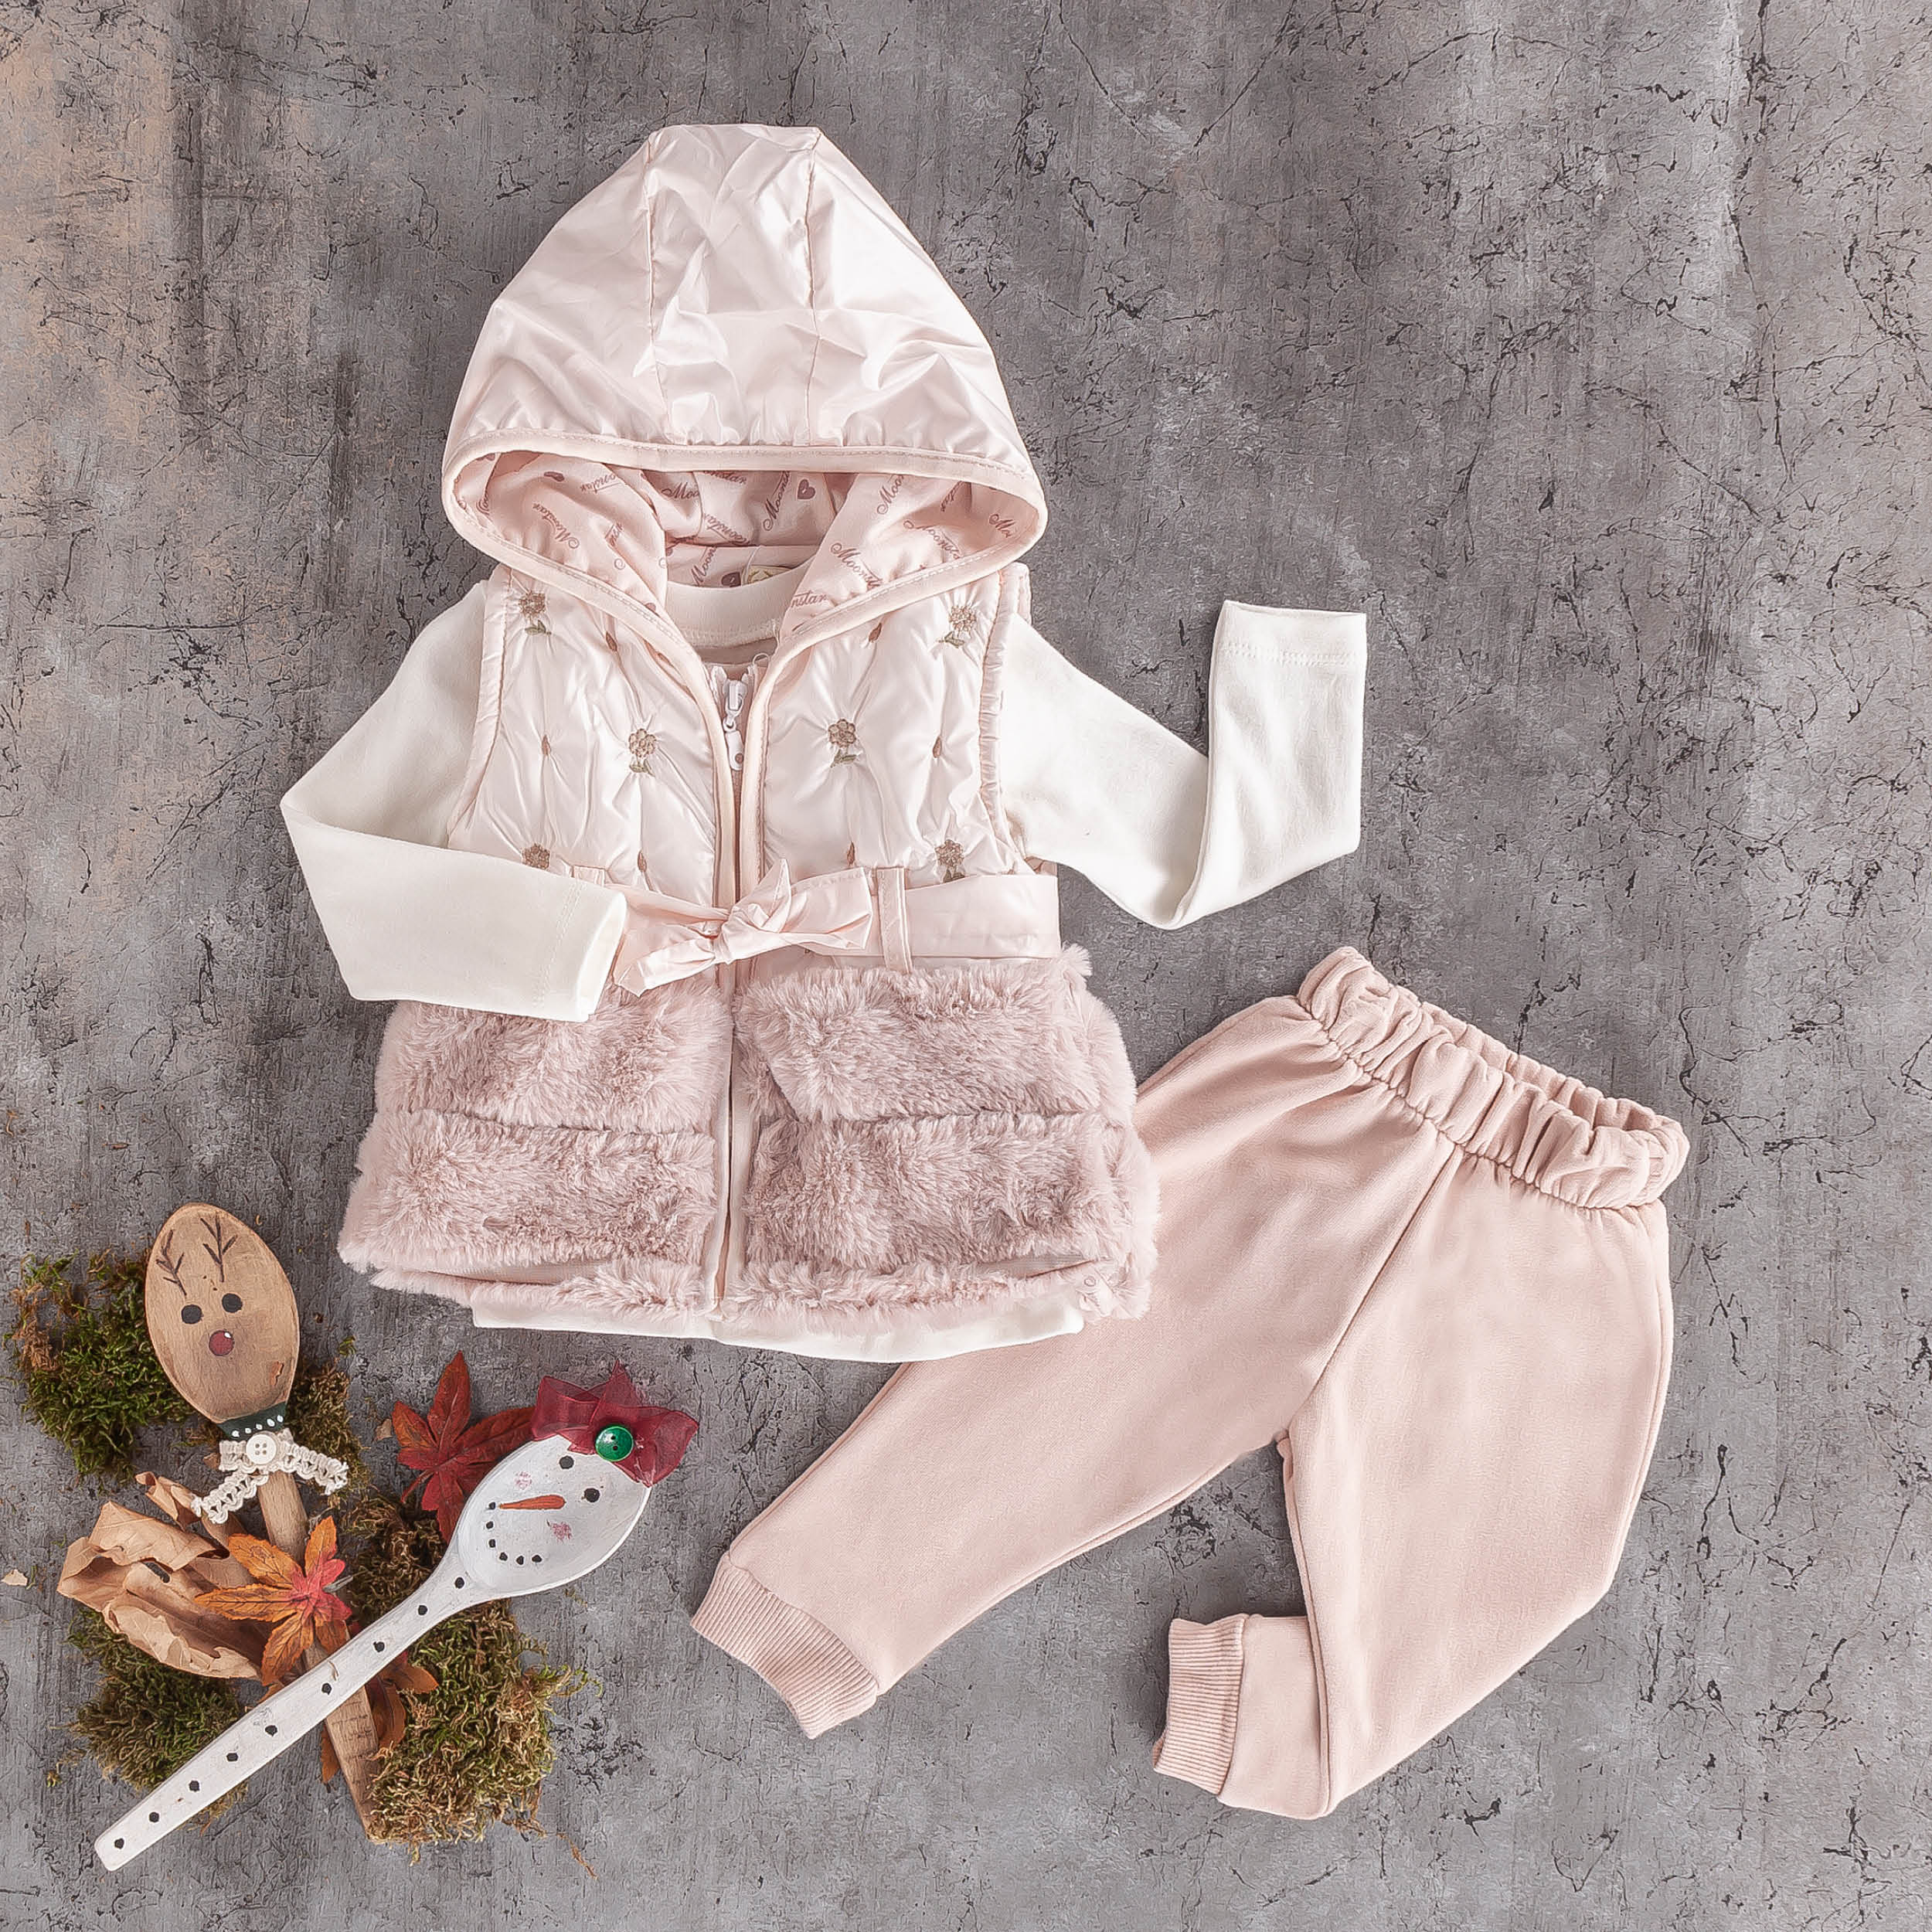 3 PC girls kids Hoodie fur jogger jogging set